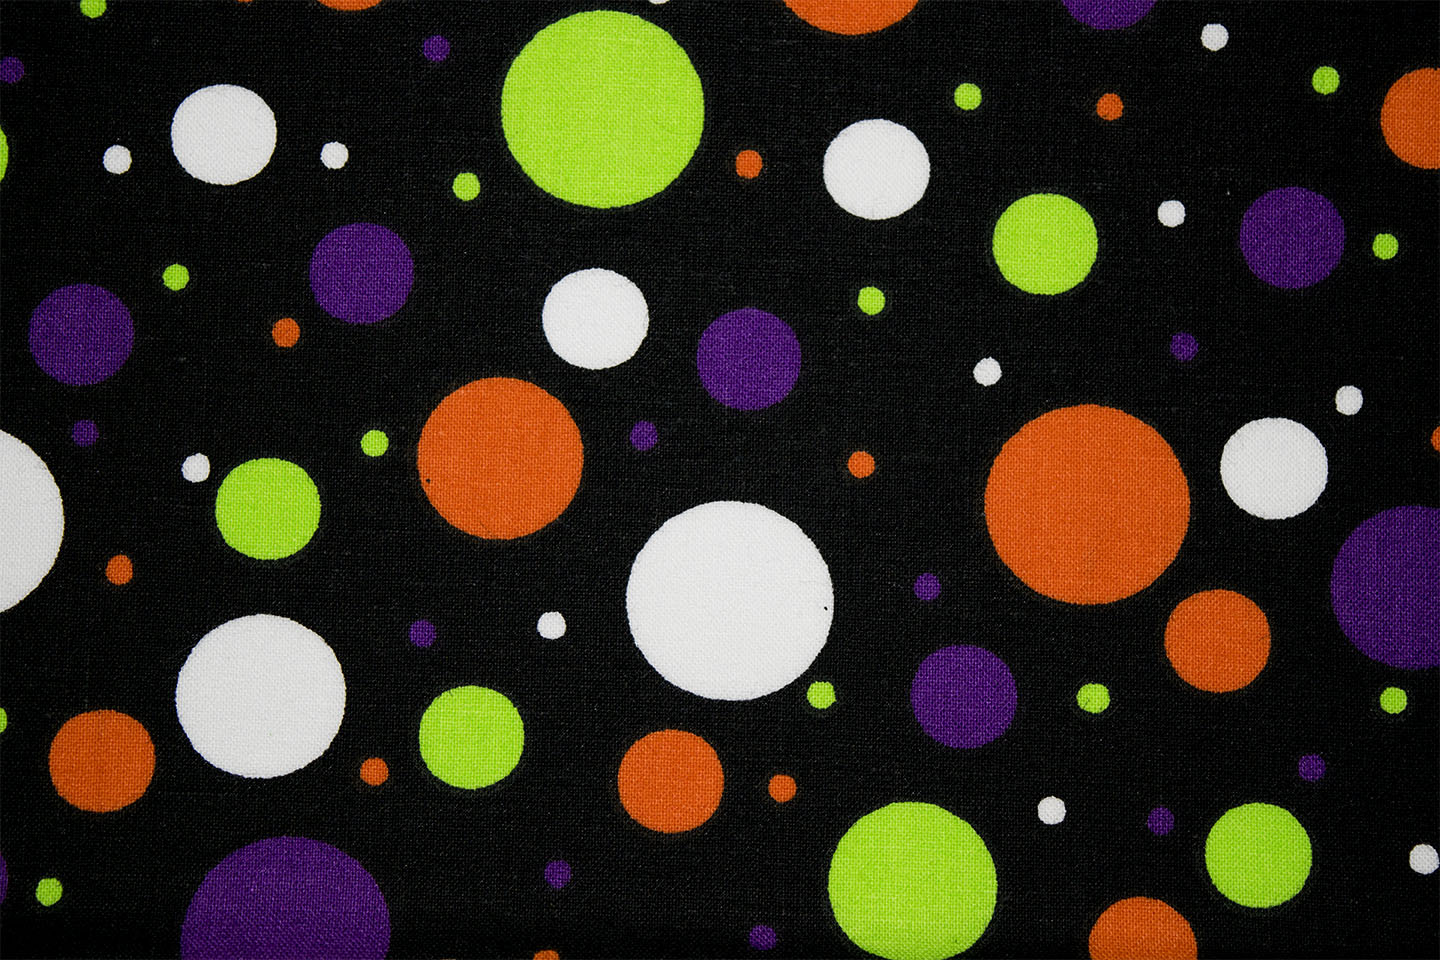 225_46433_MultiDots2Black